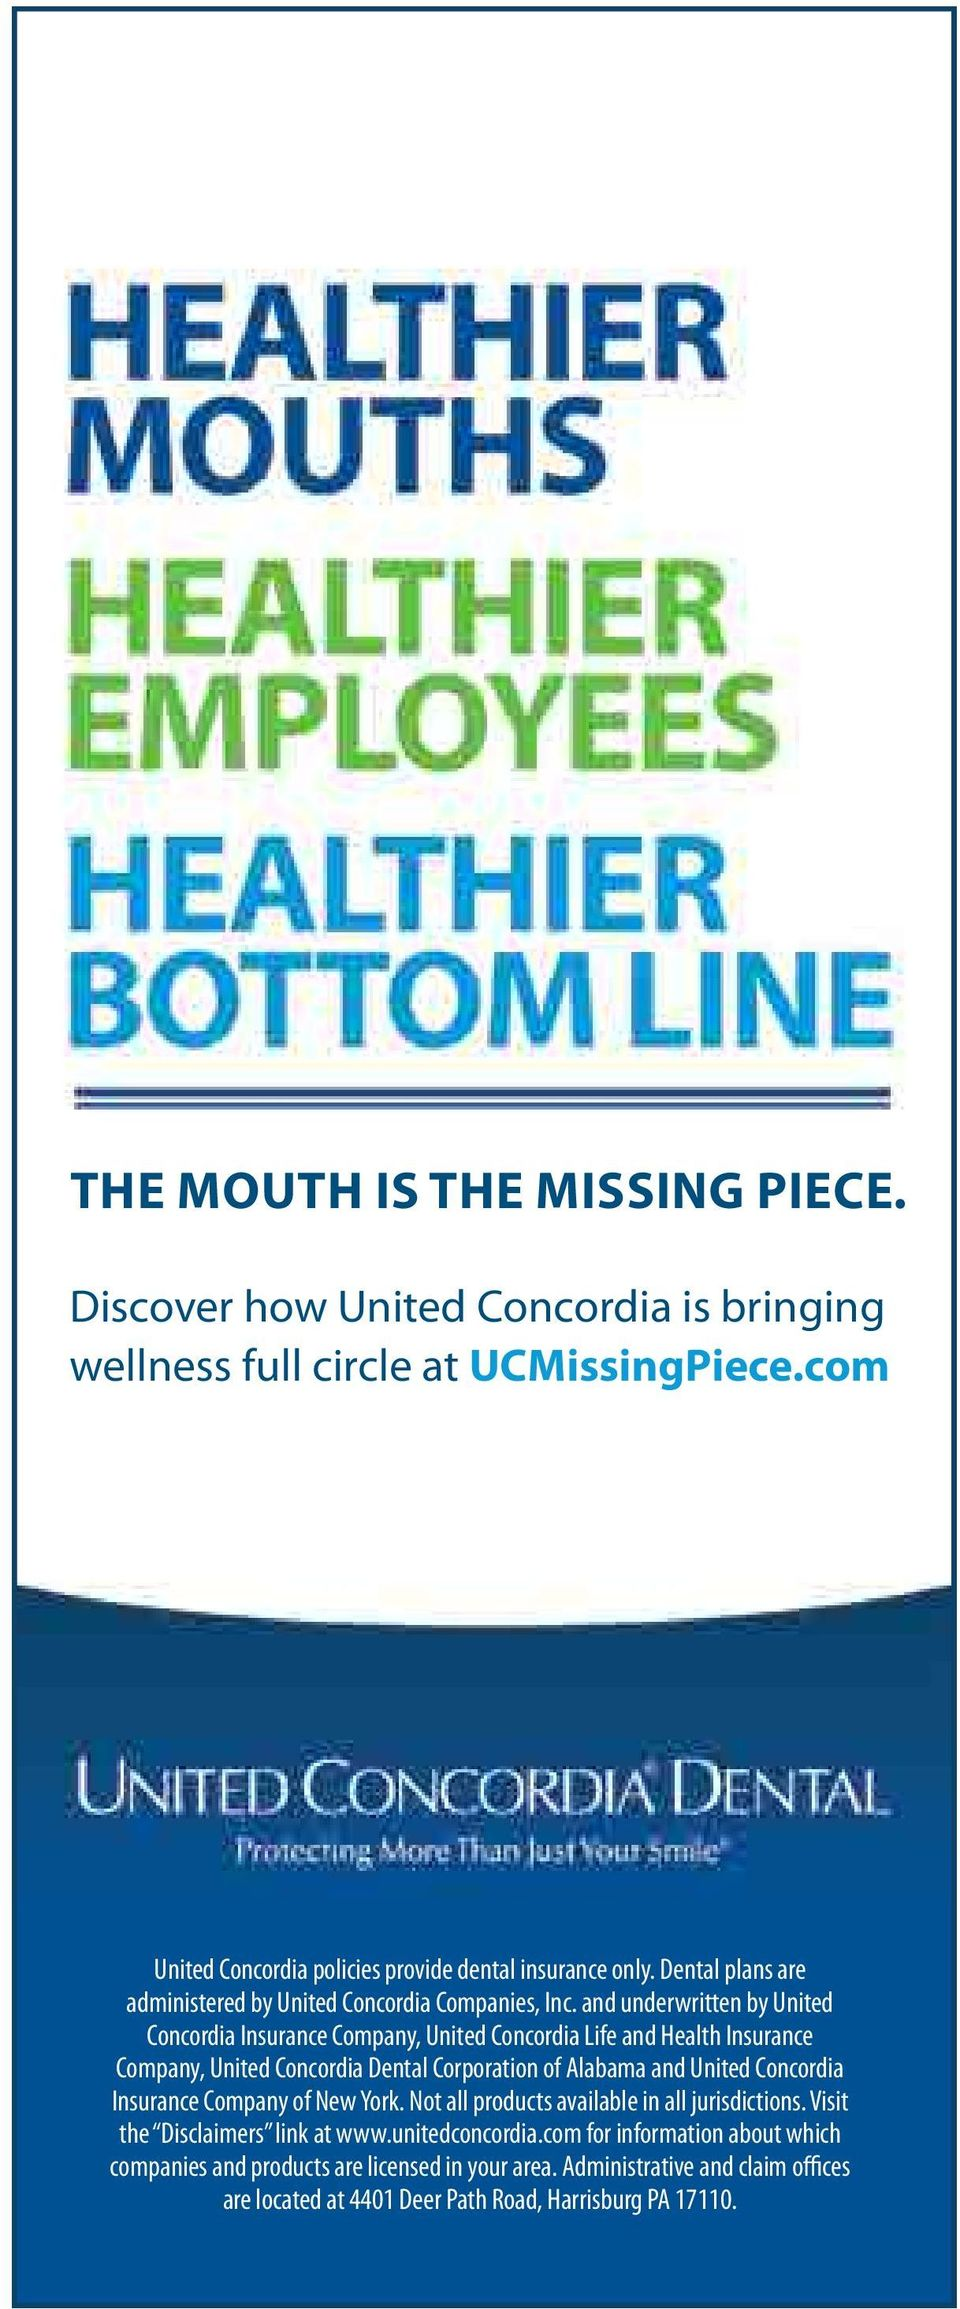 and underwritten by United Concordia Insurance Company, United Concordia Life and Health Insurance Company, United Concordia Dental Corporation of Alabama and United Concordia